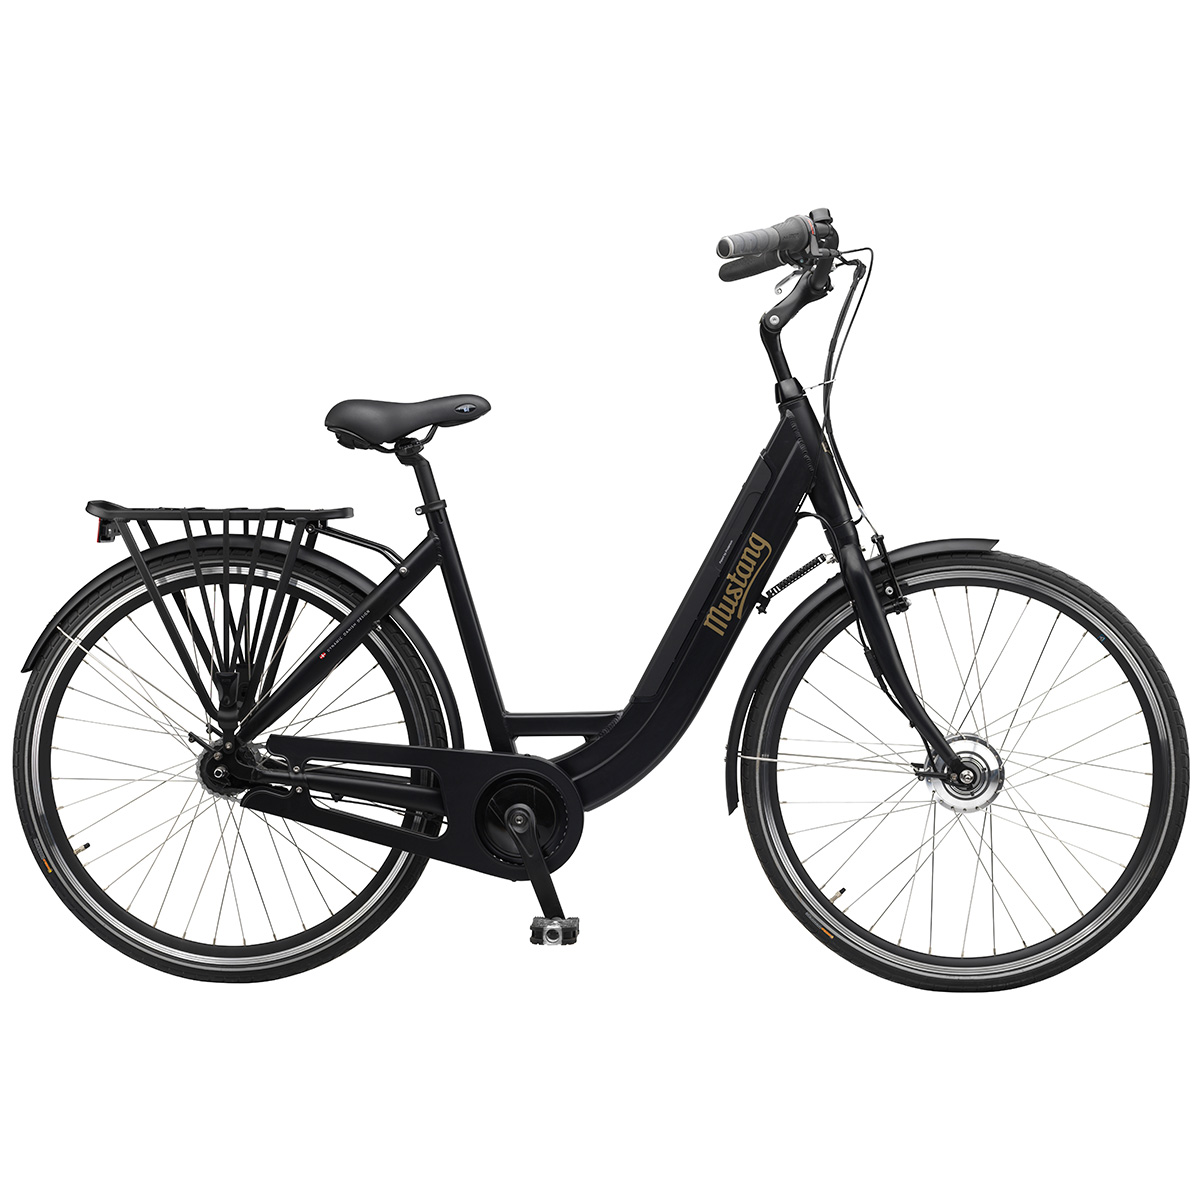 Mustang Emotion dame elcykel med 7 gear - Sort | City